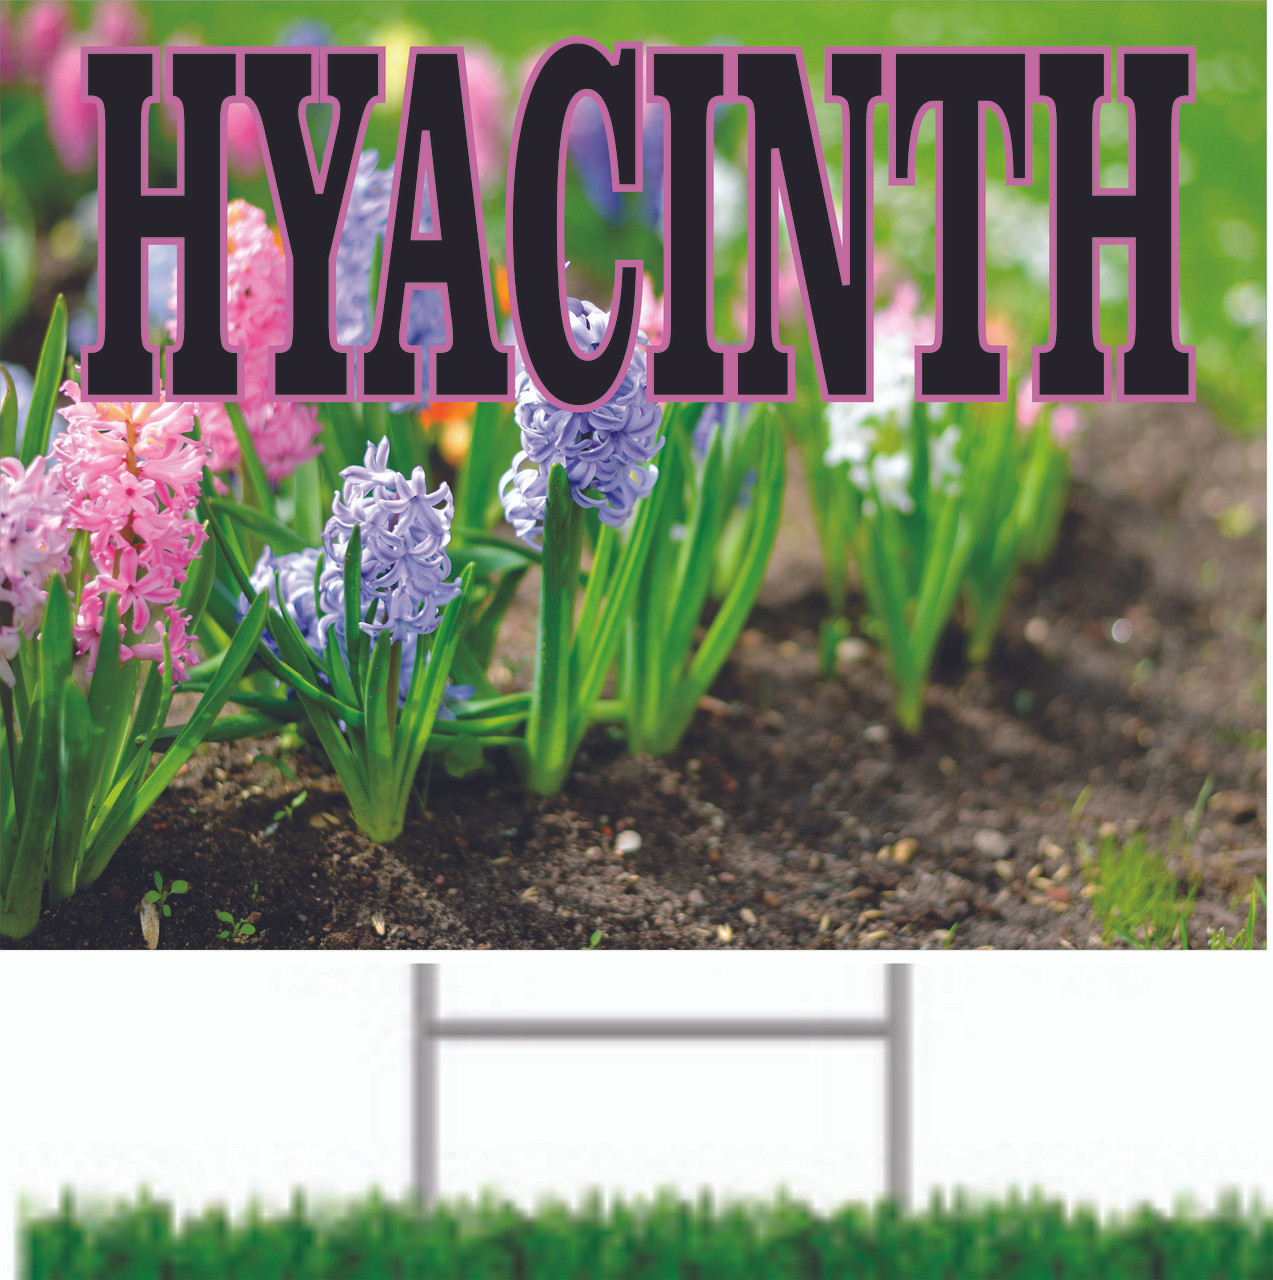 Hyacinth Yard Sign is Colorful & Inviting.